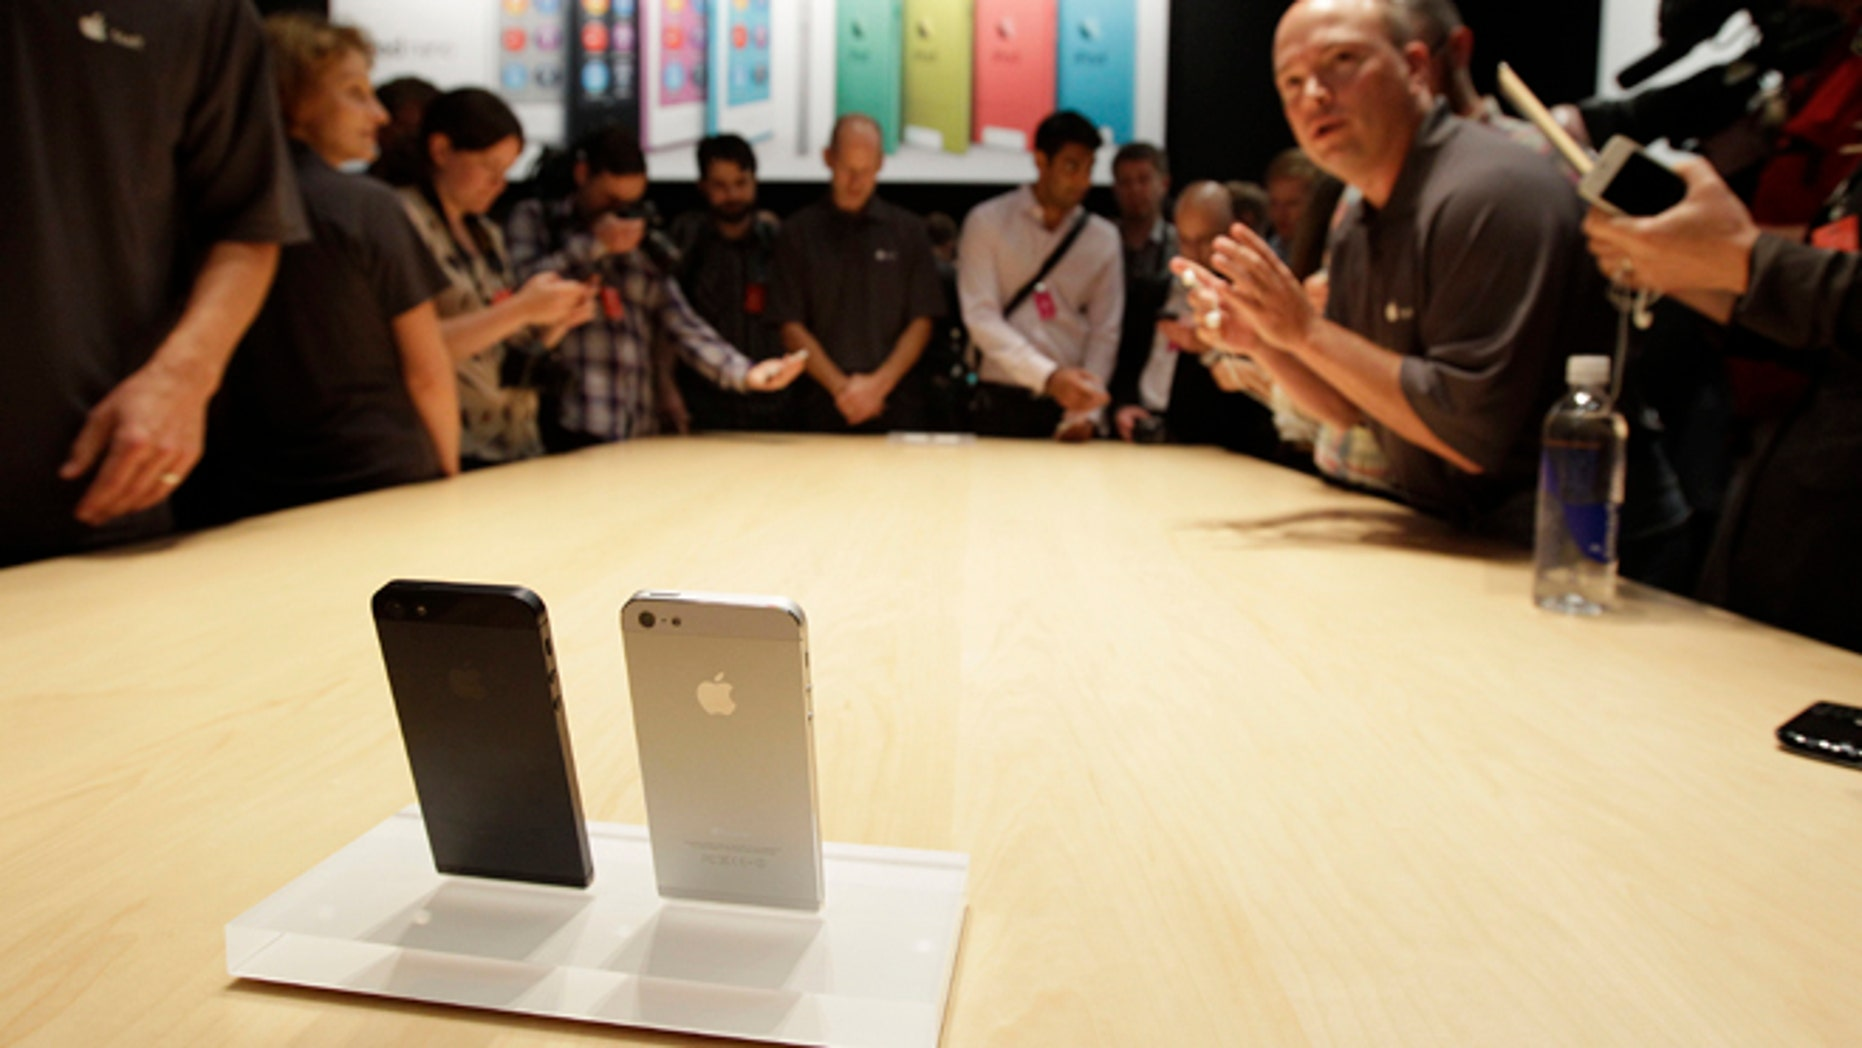 Apple's new iPhone 5 is getting dragged into the patent wars.